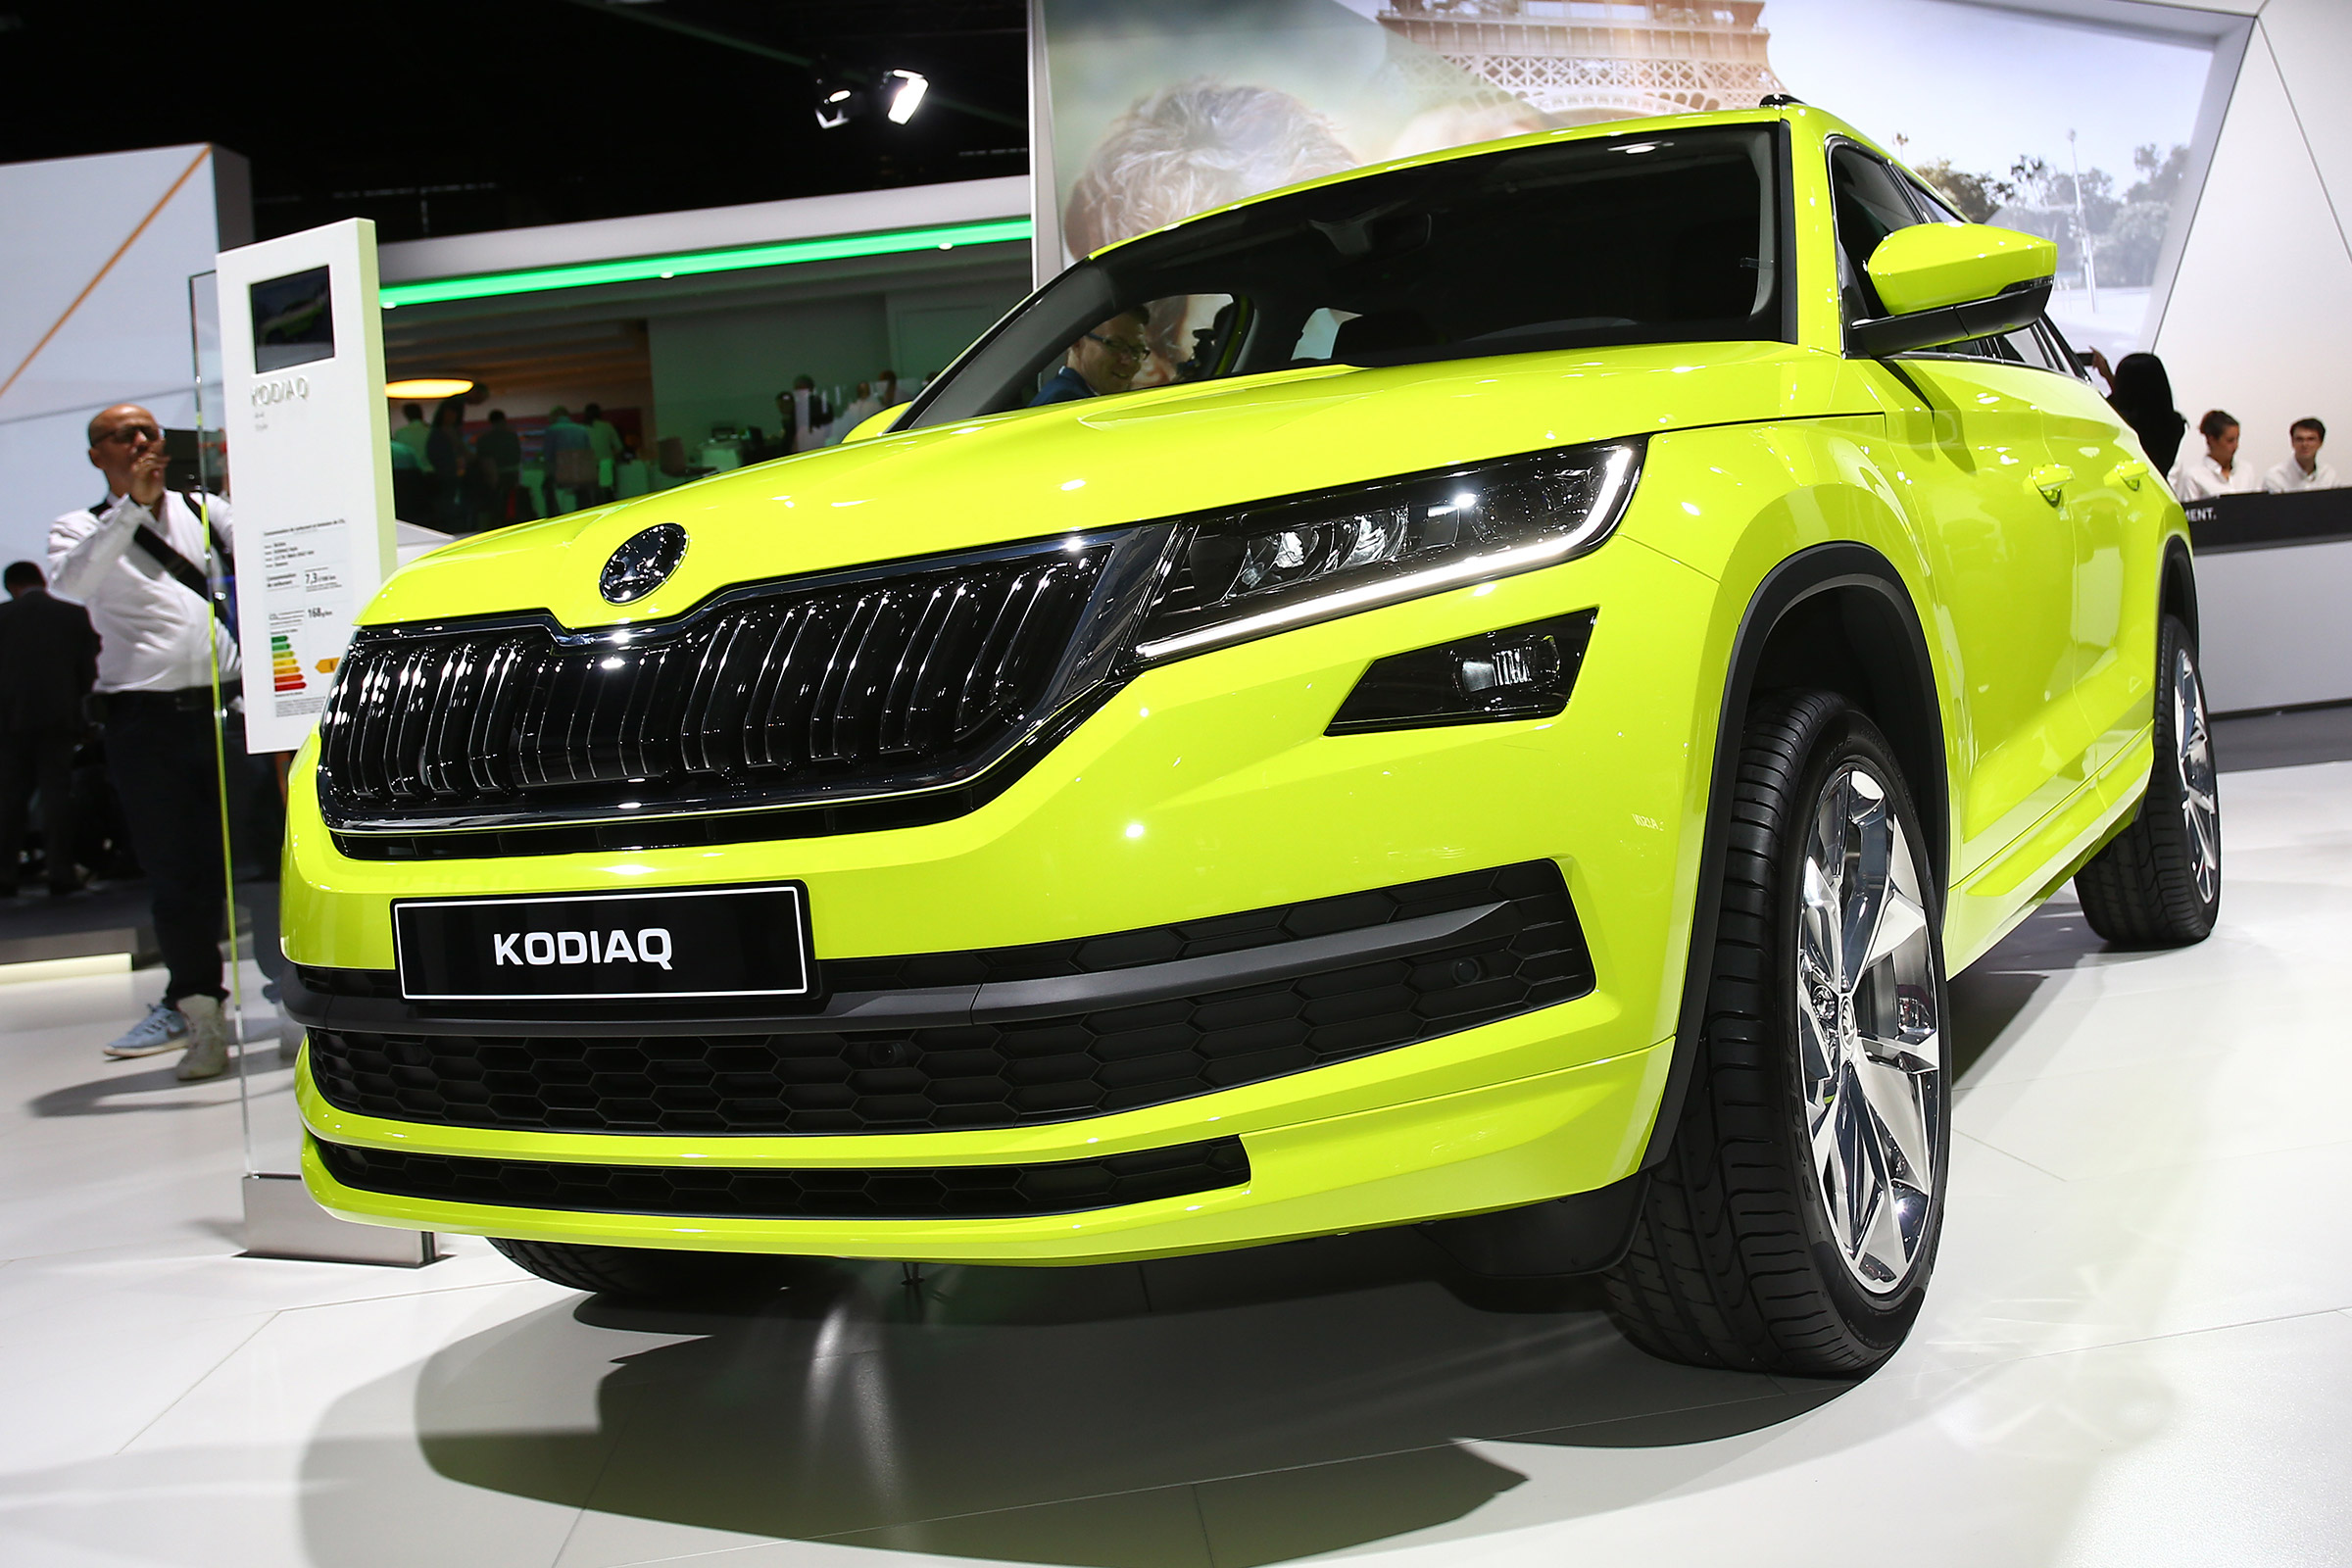 New Skoda Kodiaq Suv Prices Specs And Everything You Need To Know Auto Express